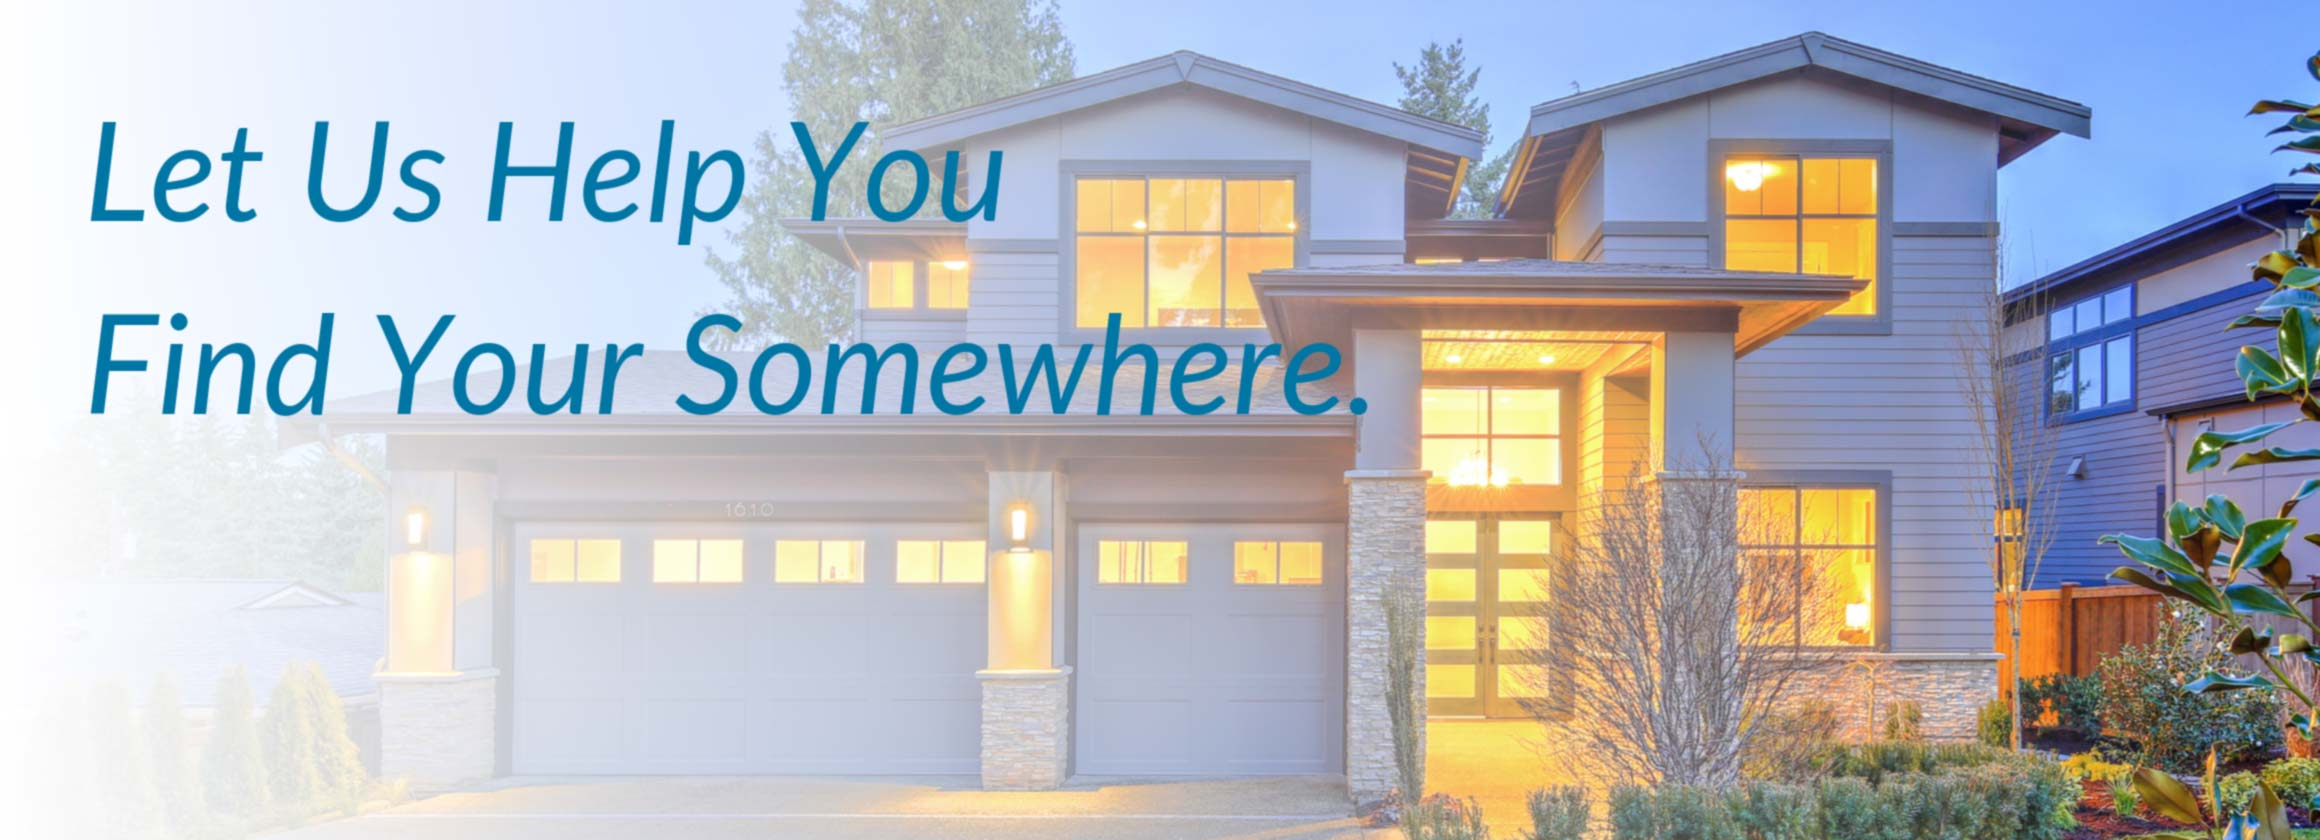 Let us help you find your somehwere. - Wasatch Life Realty